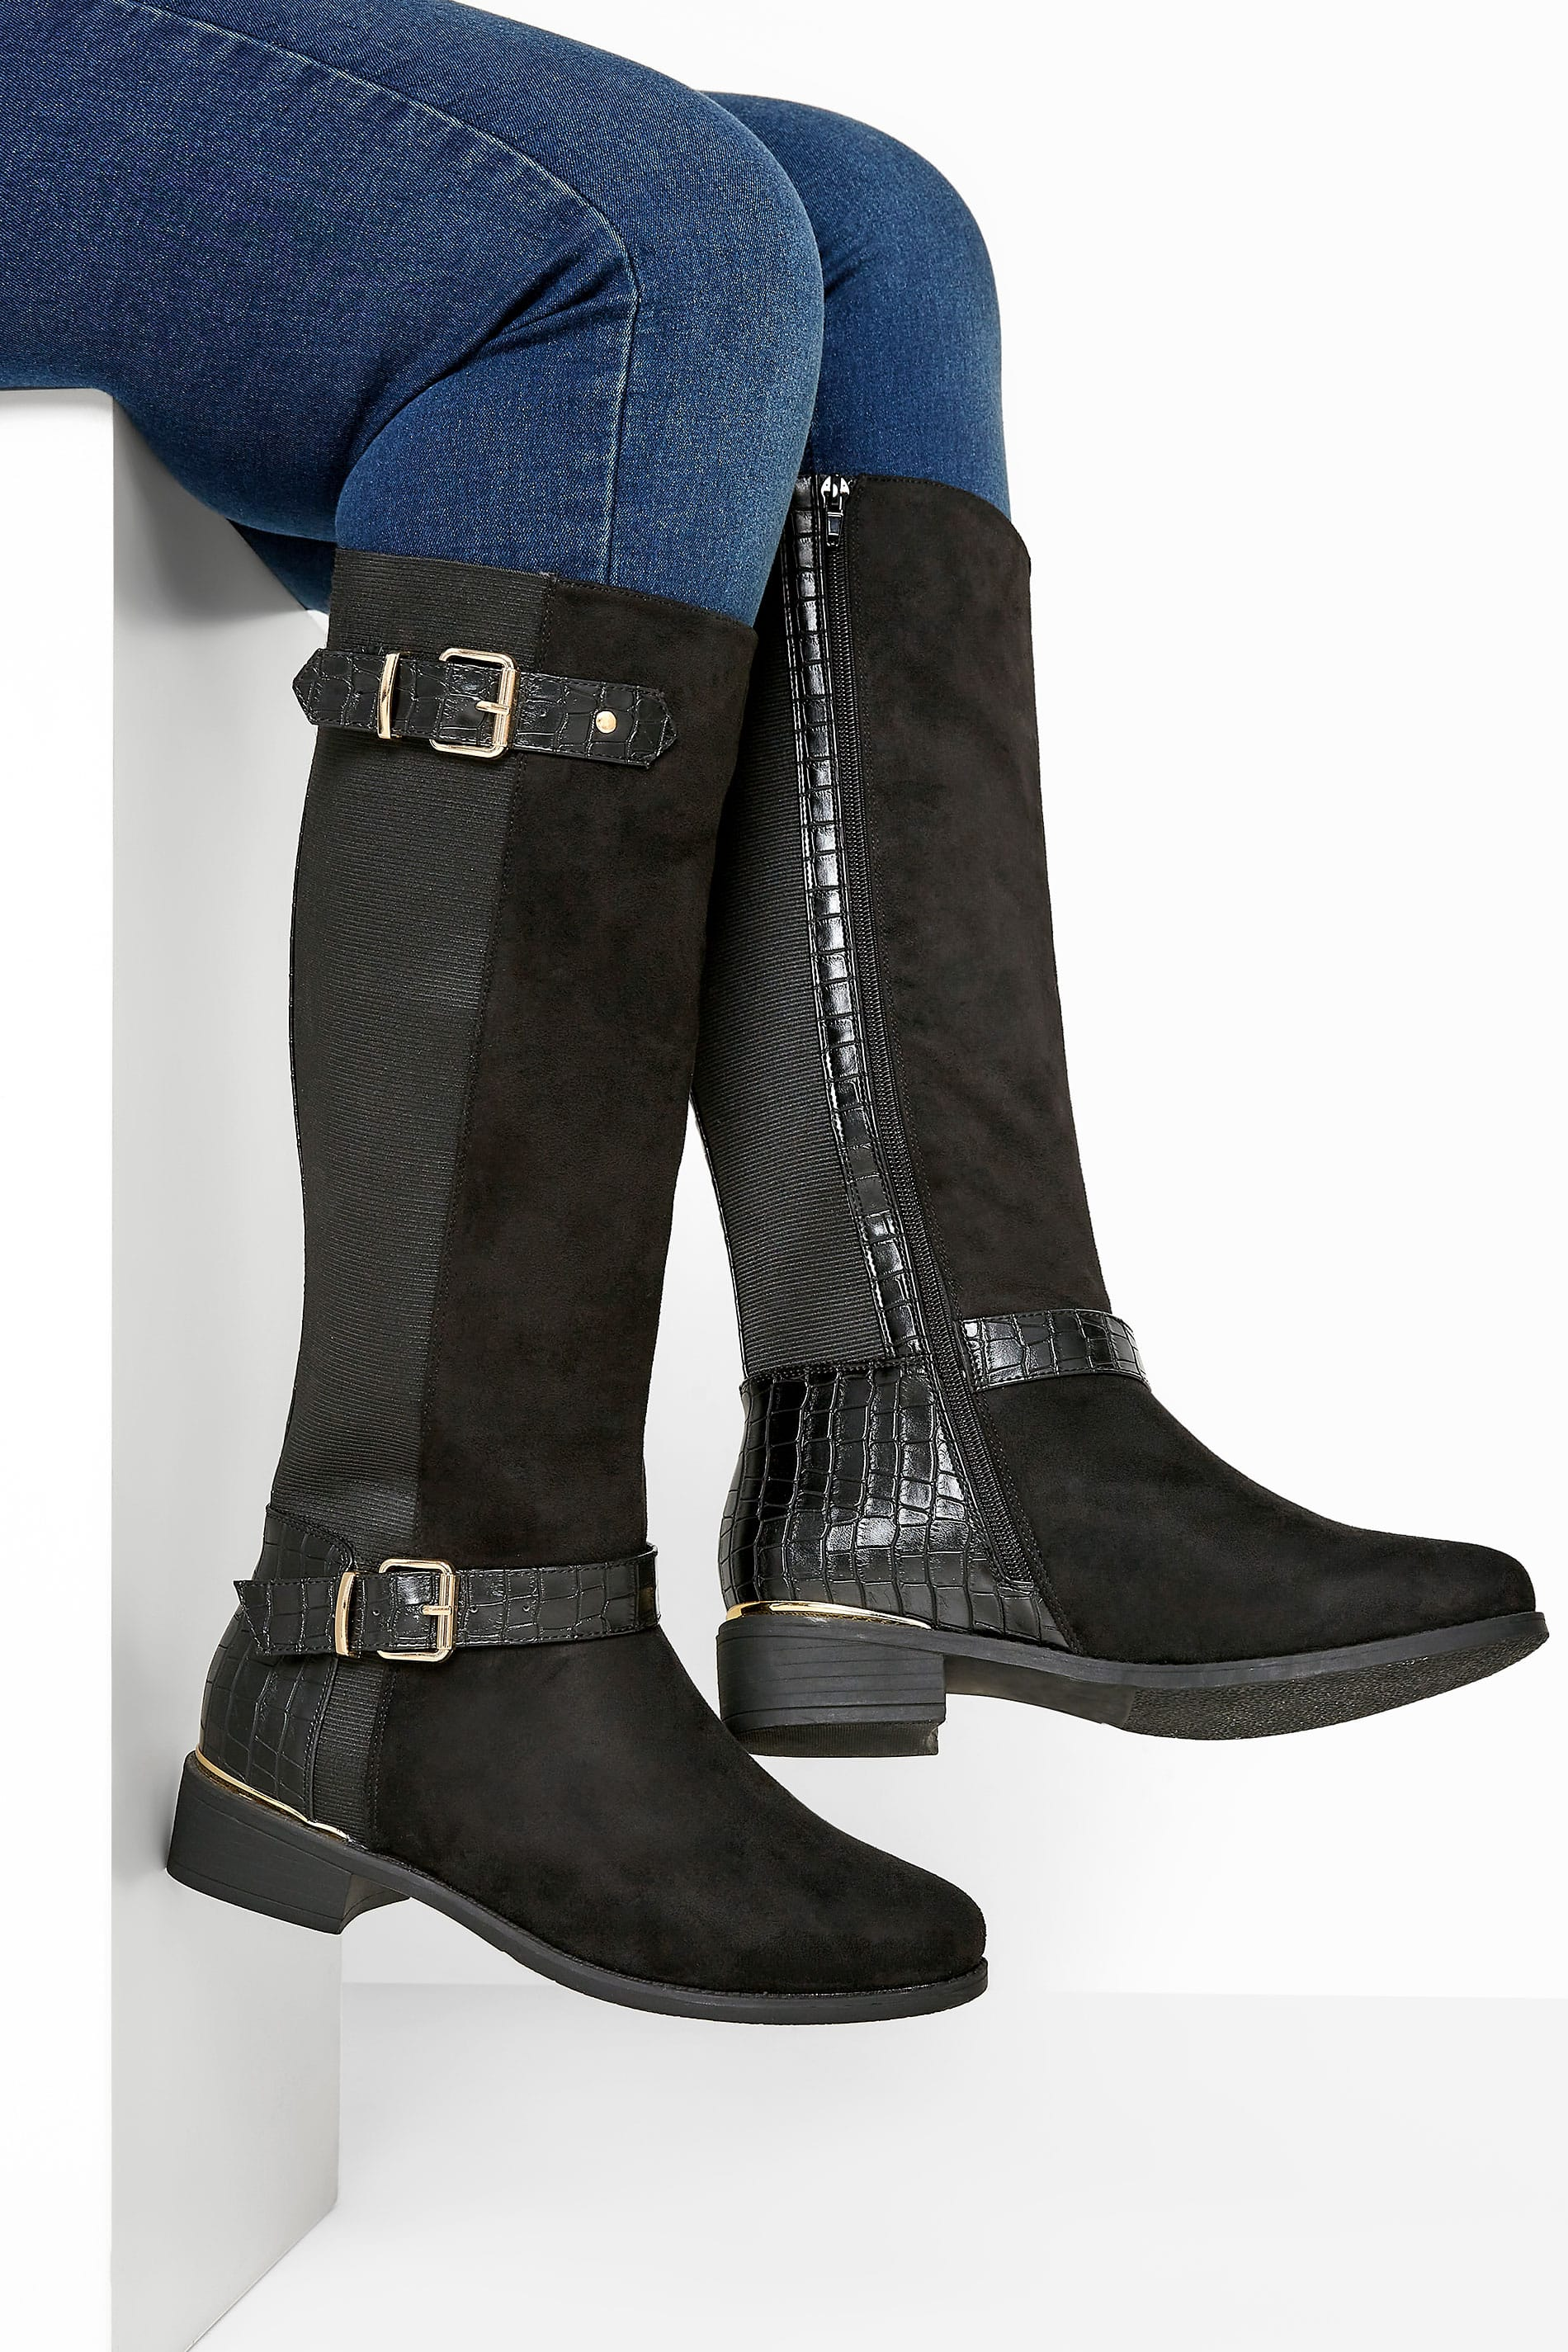 Yours Black Faux Suede Croc Stretch Knee High Boots In Extra Wide Fit